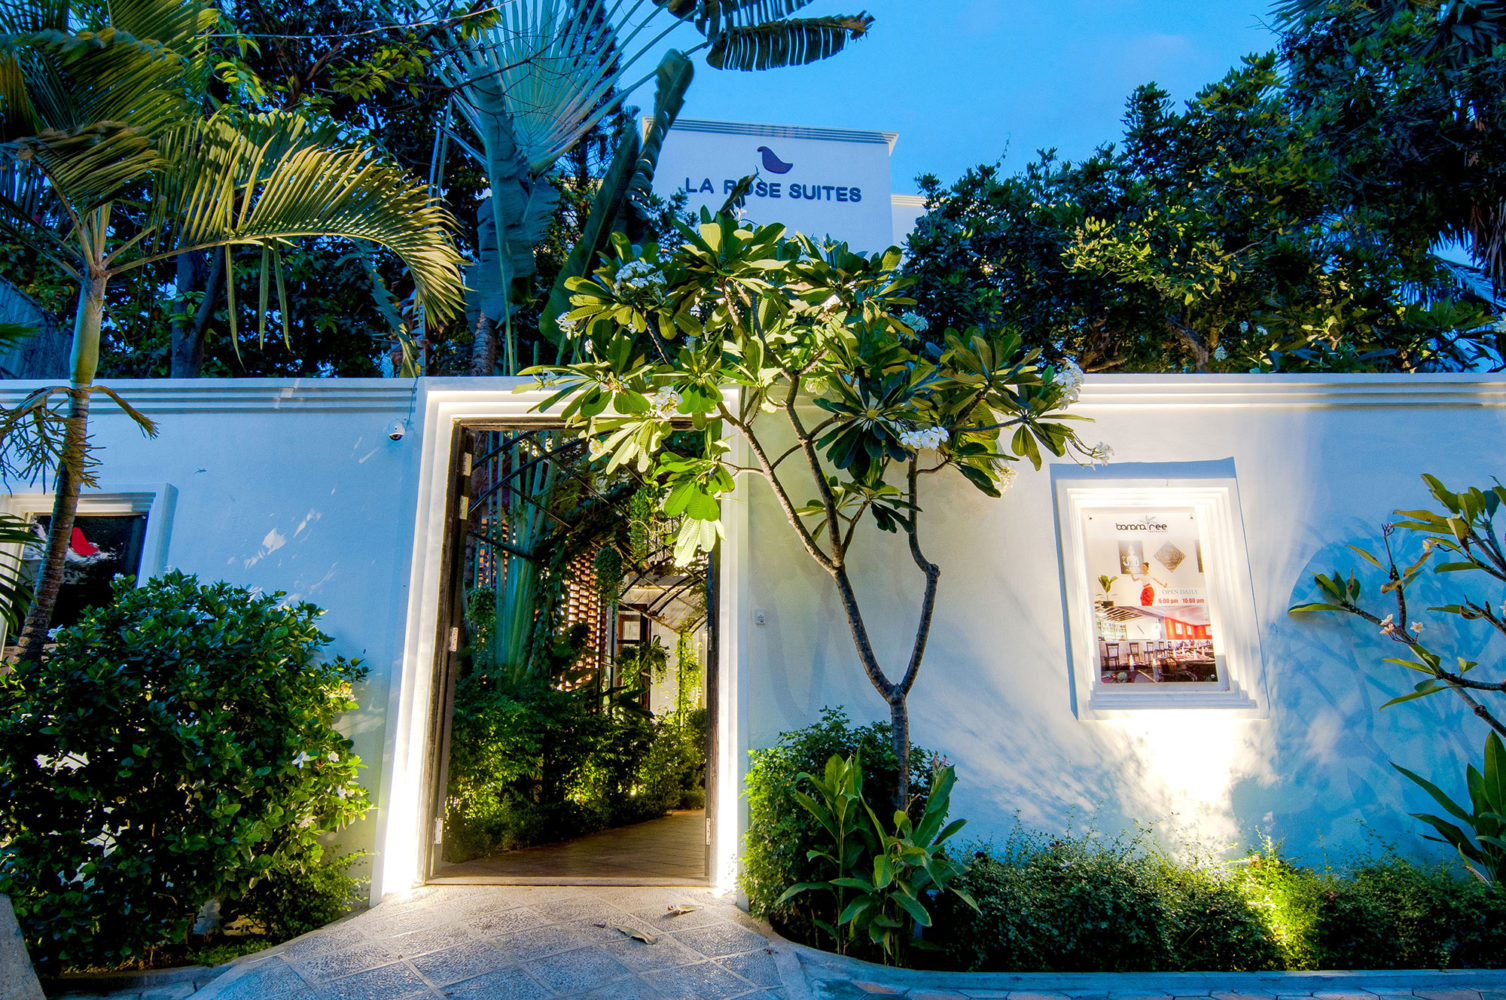 La Rose Suites: Phnom Penh's First Five-Star Boutique Hotel